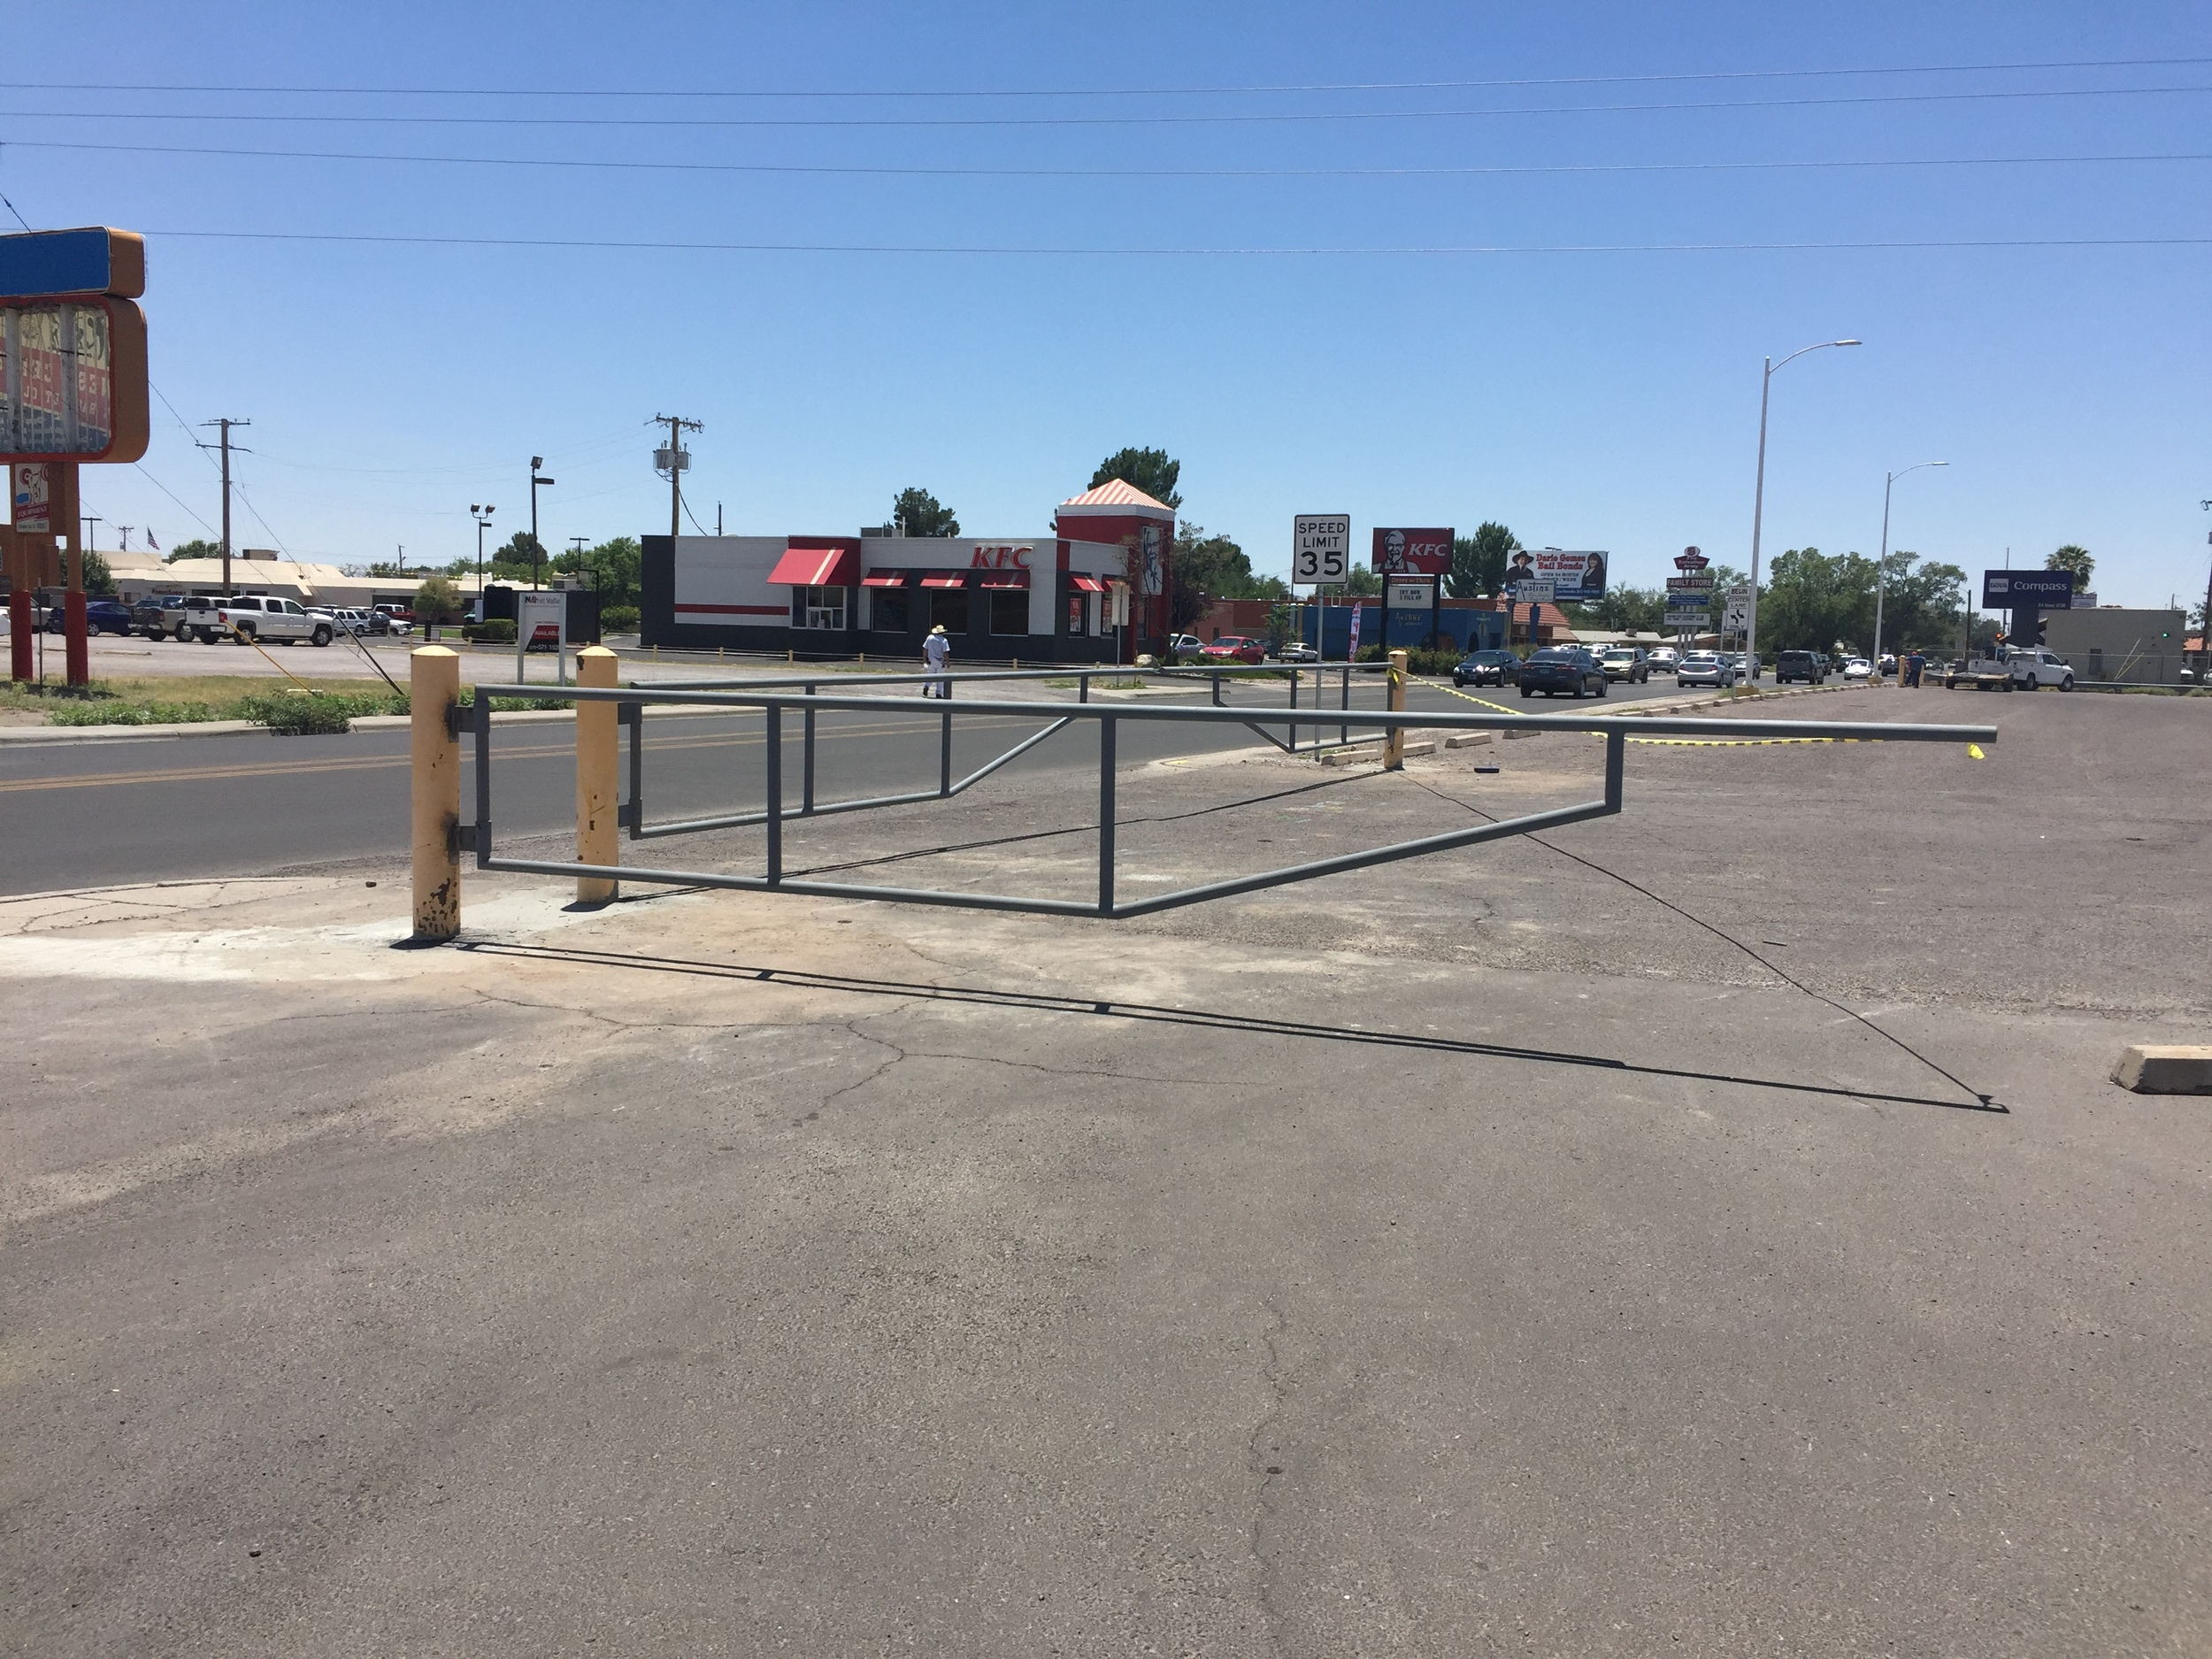 Safety Gates Installed in Parking Lot